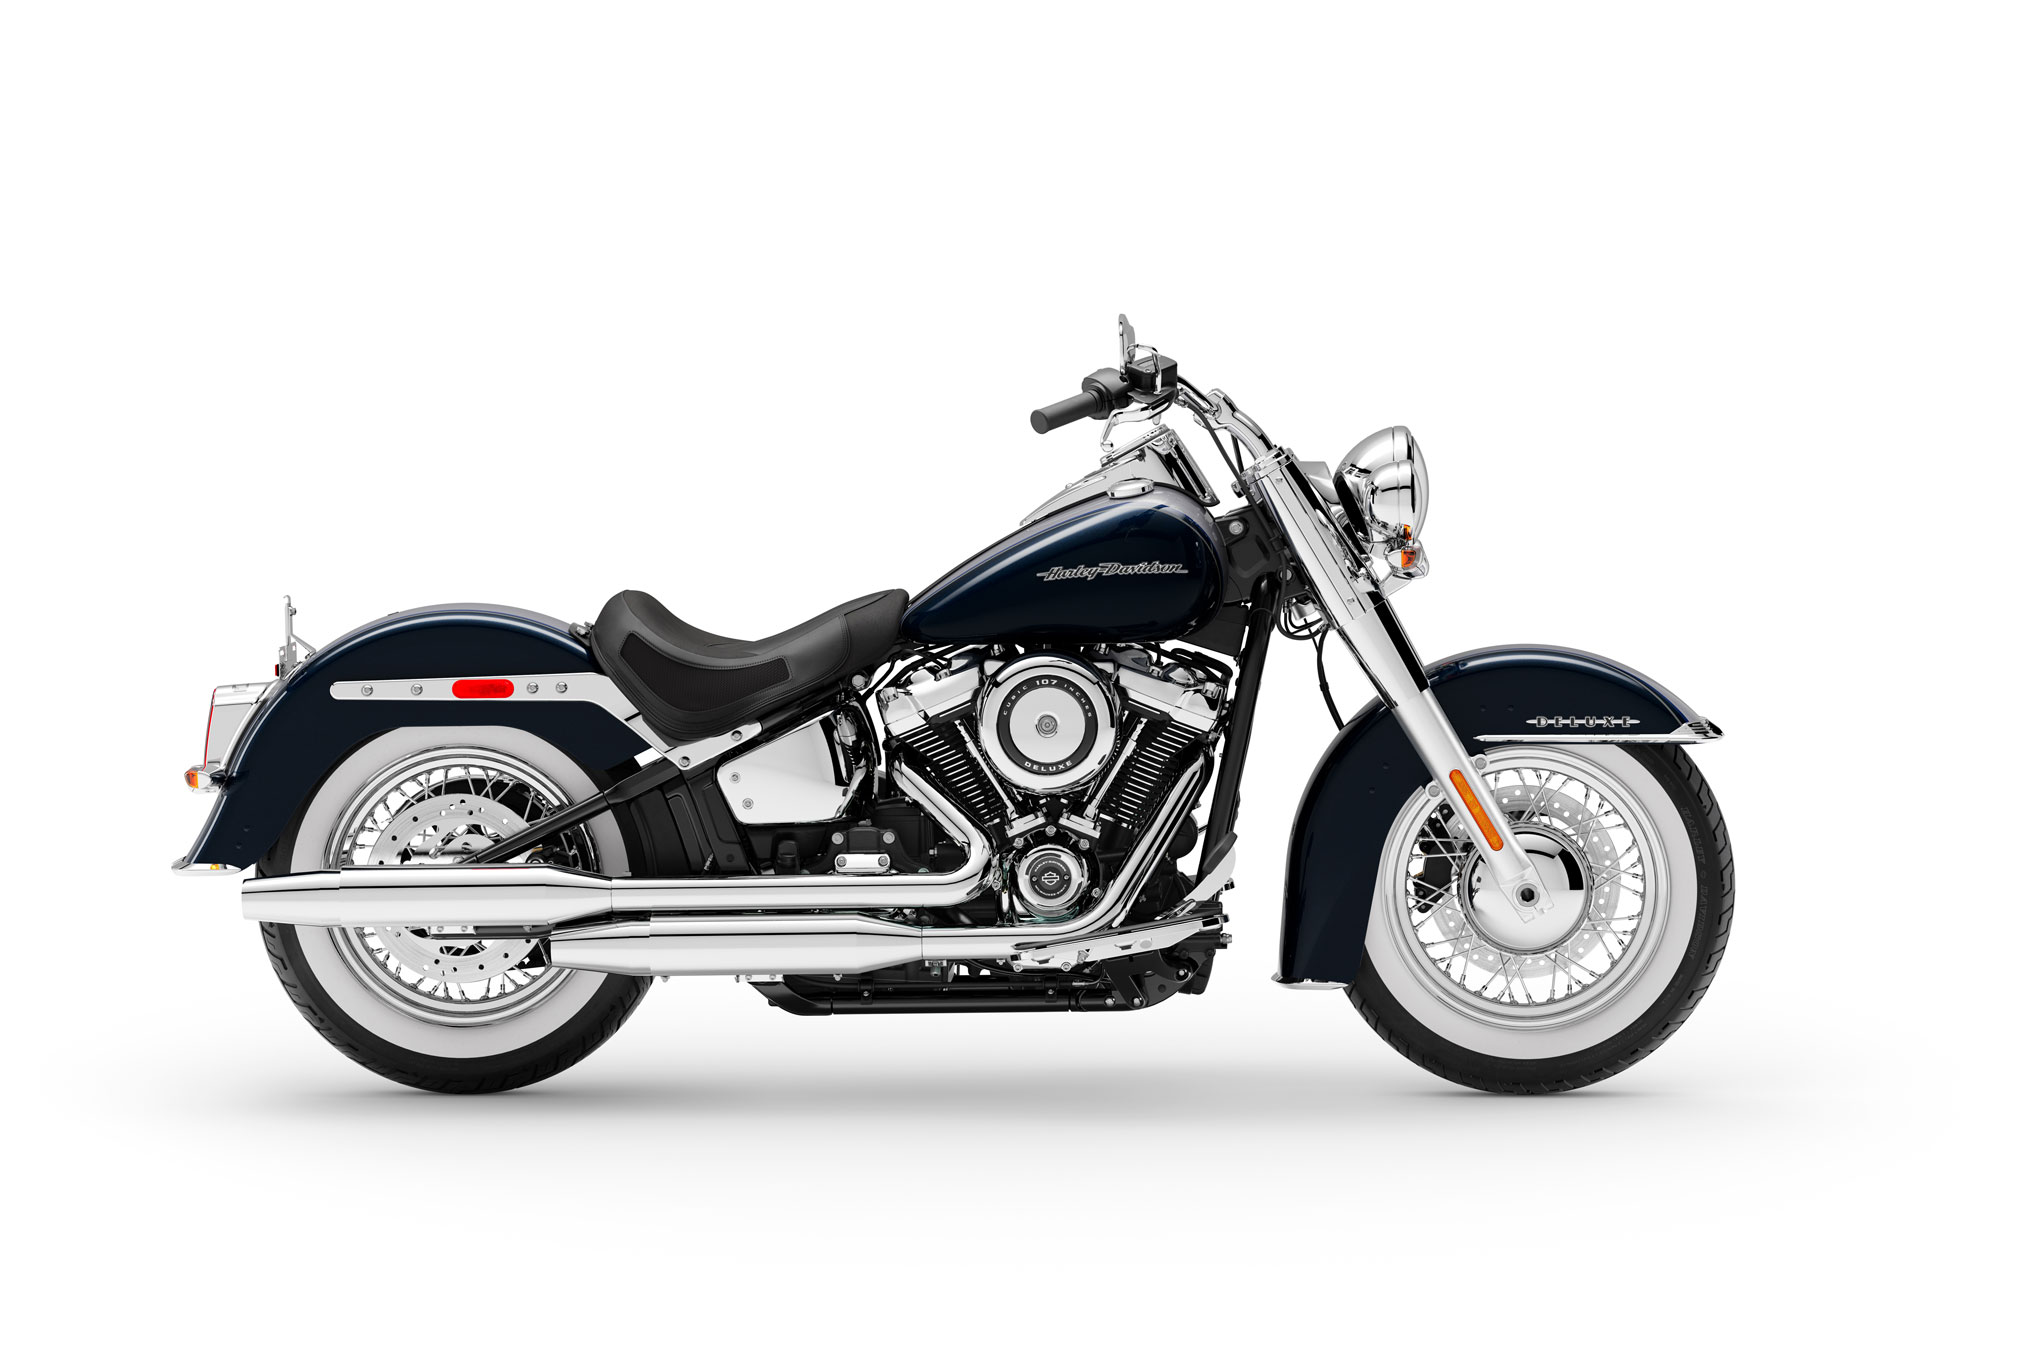 2019 Harley-Davidson Deluxe Guide • Total Motorcycle